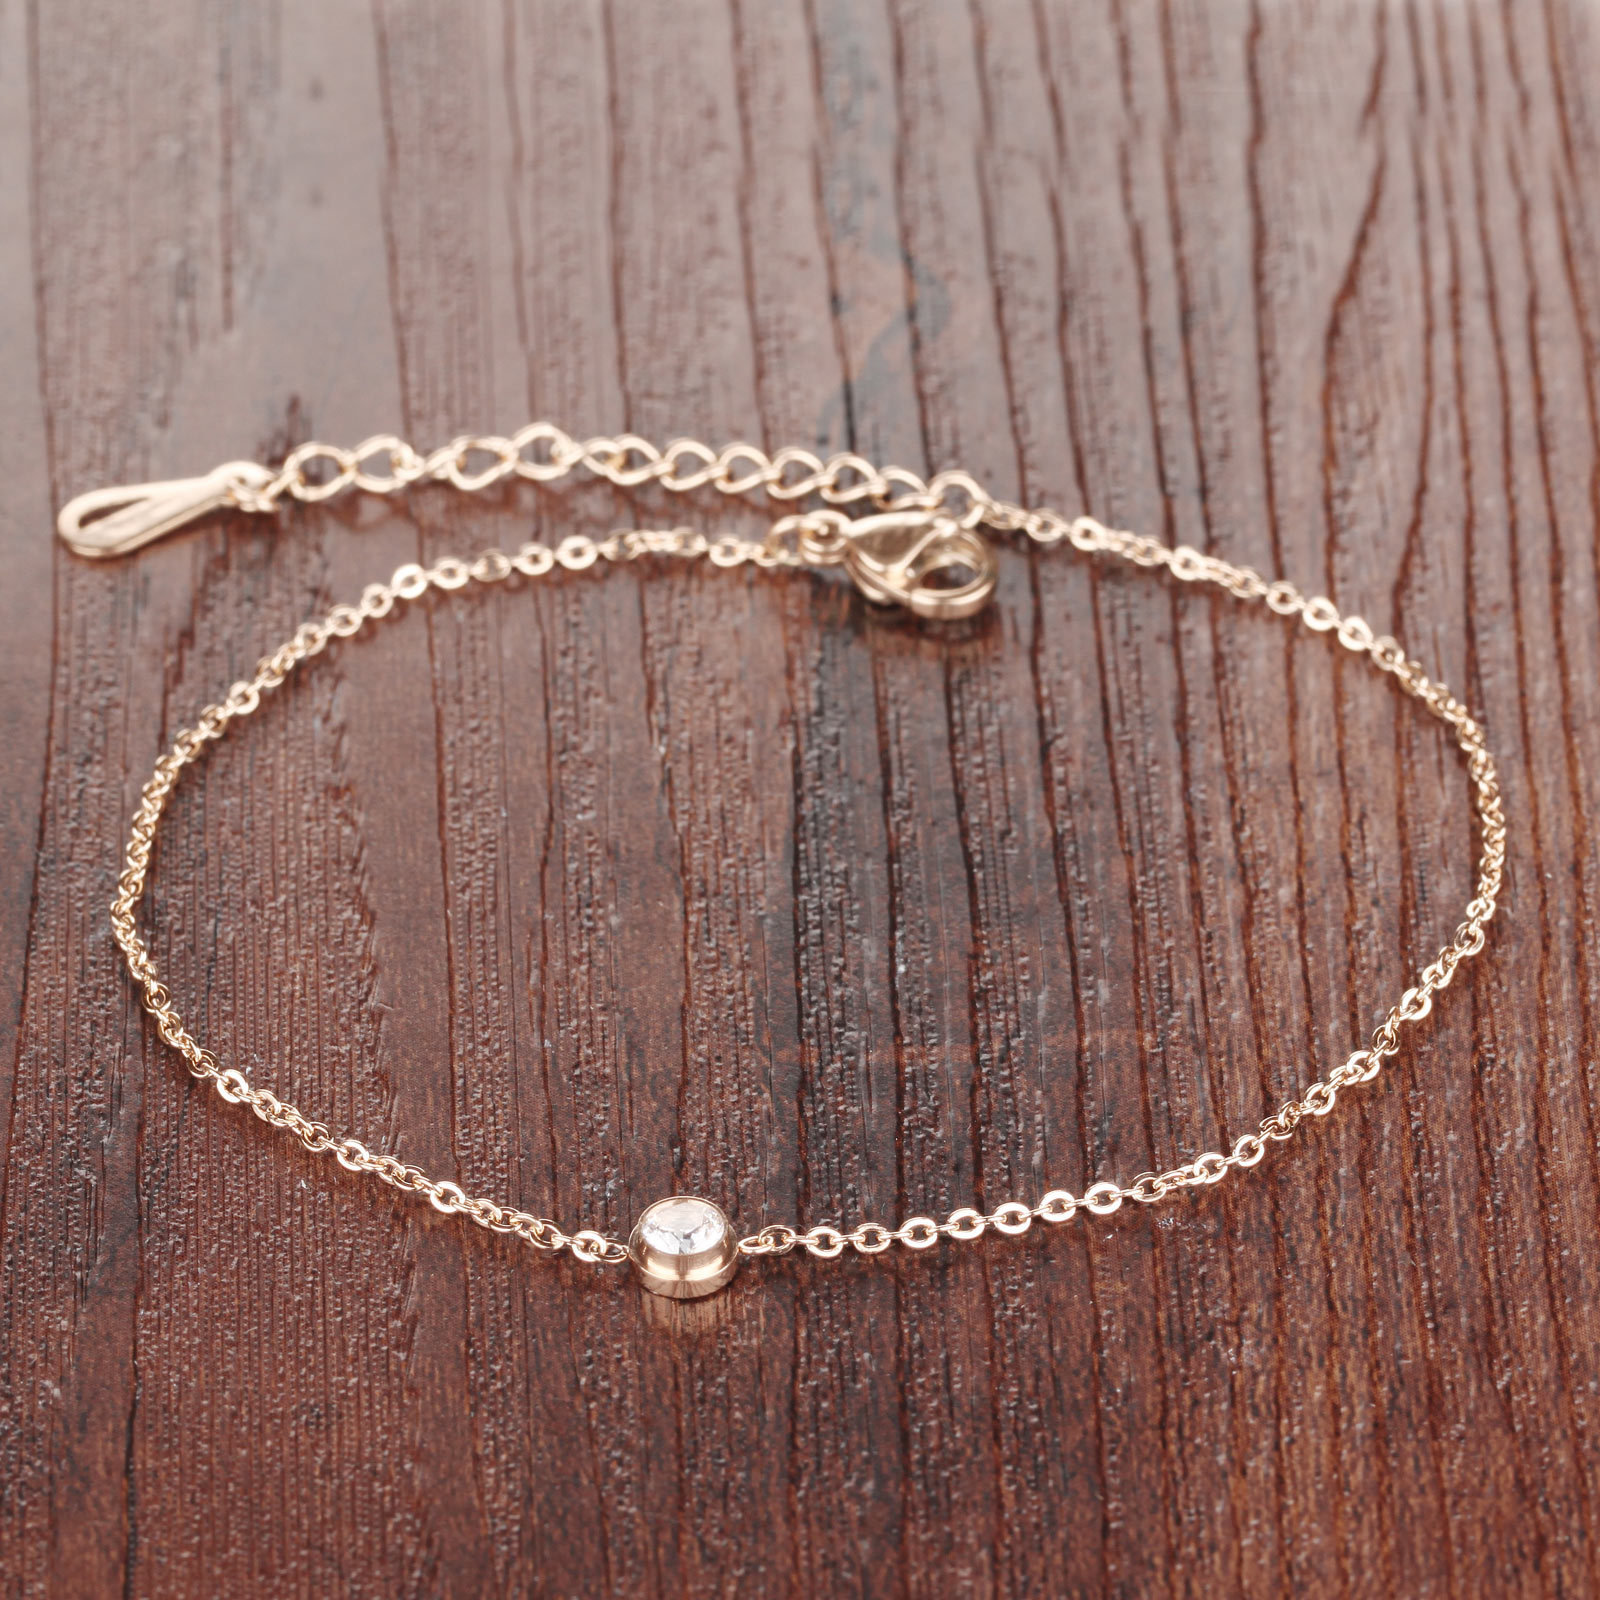 Simple  rose gold foot jewelry single cz stone zircon anklet